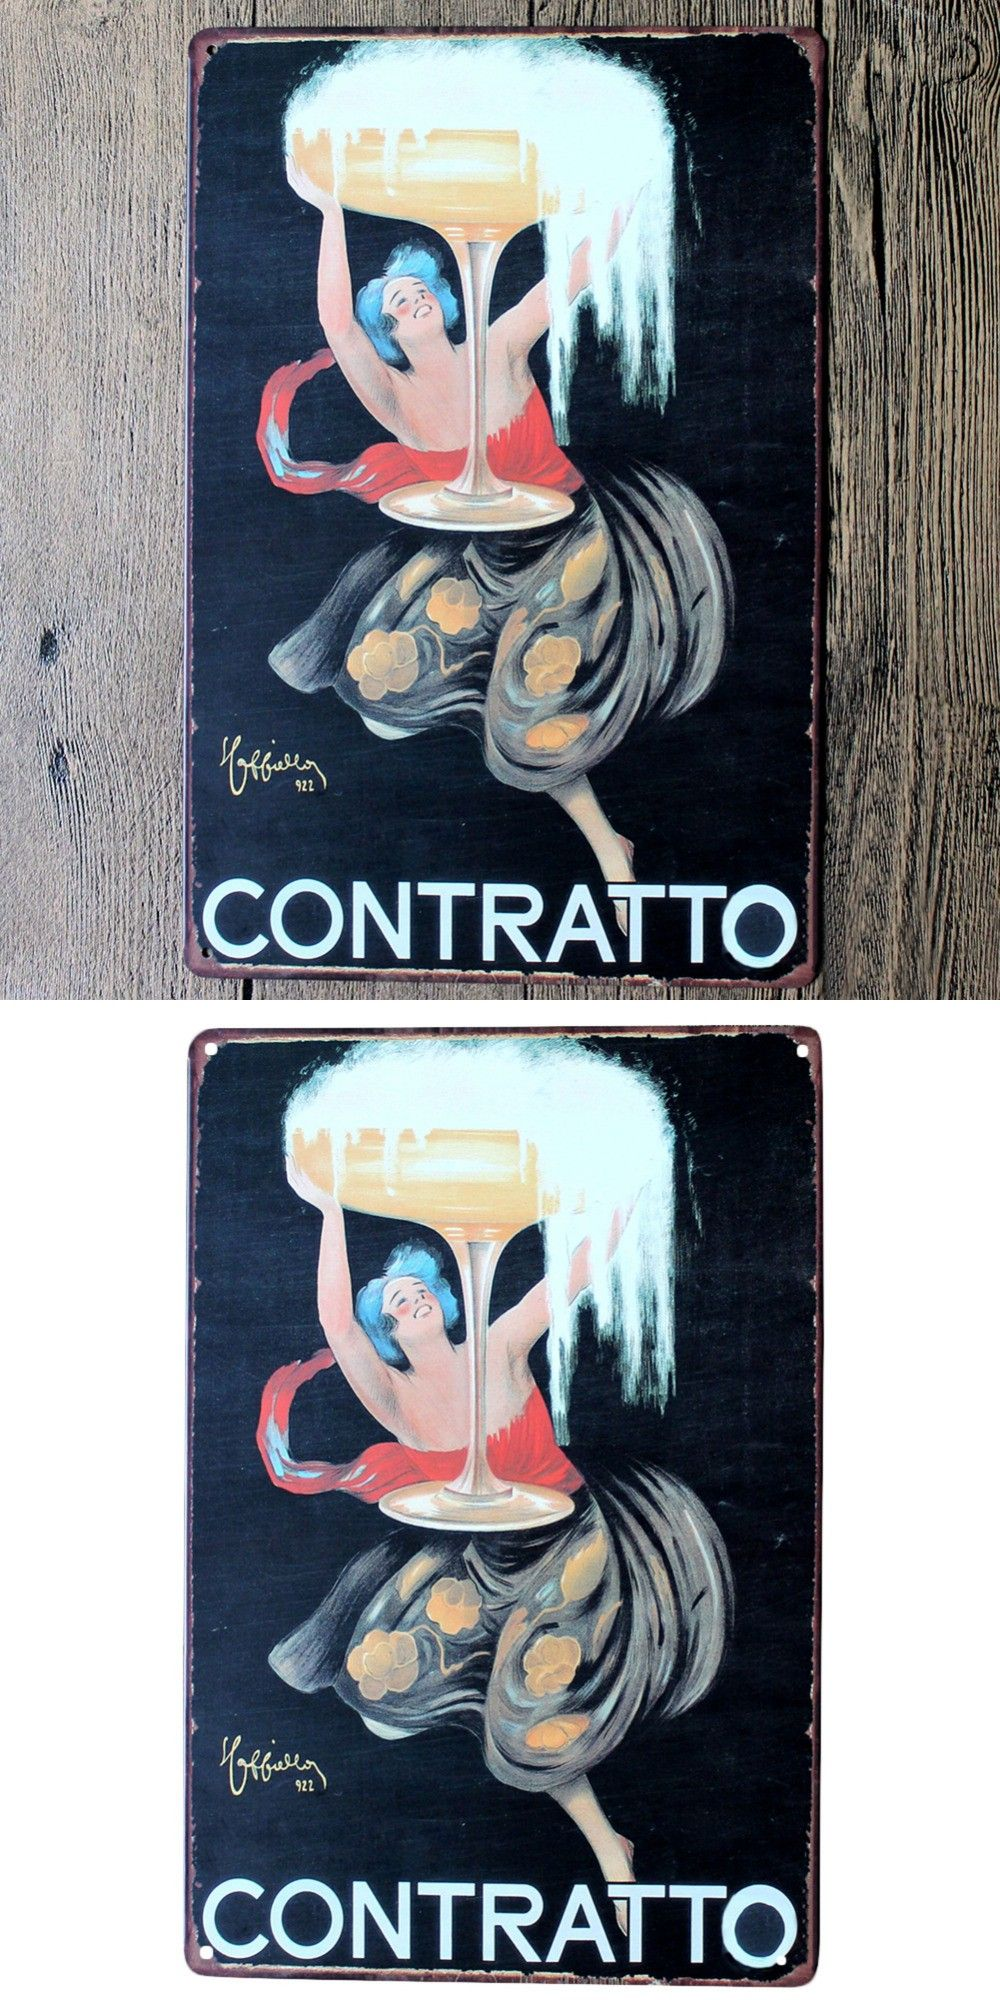 Contratto wall art in the distinctive wall poster vintage metal